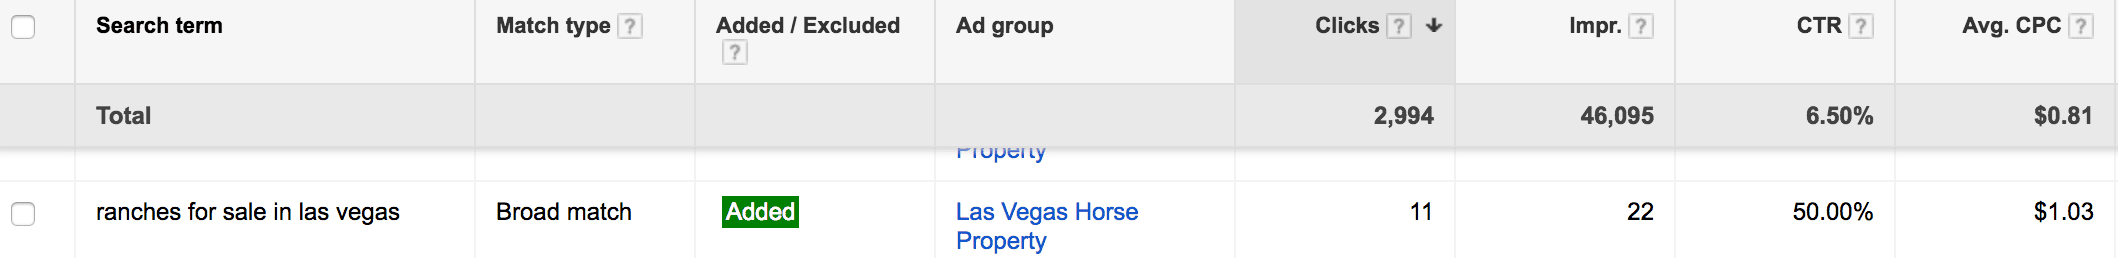 "The longtail keyword phrase ""ranches for sale"" is suggested in the ad group ""Horse Property for Sale"""